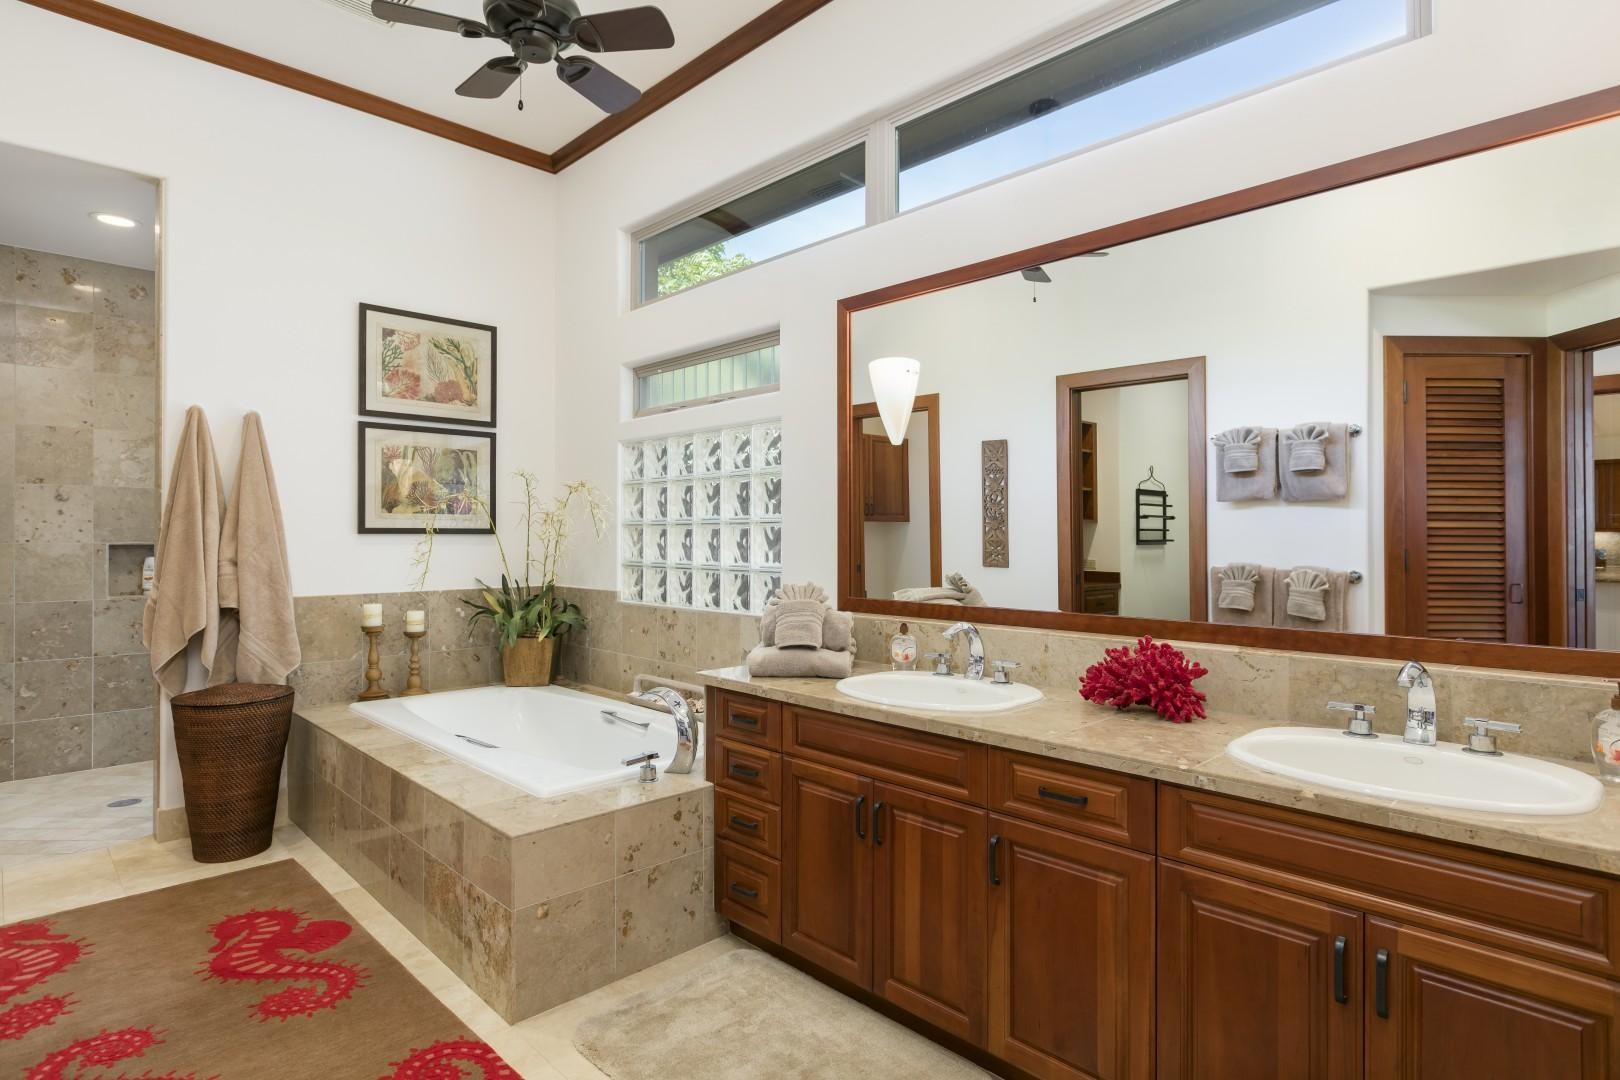 Soaking Tub, Indoor Shower, and Outdoor Shower - You choose!